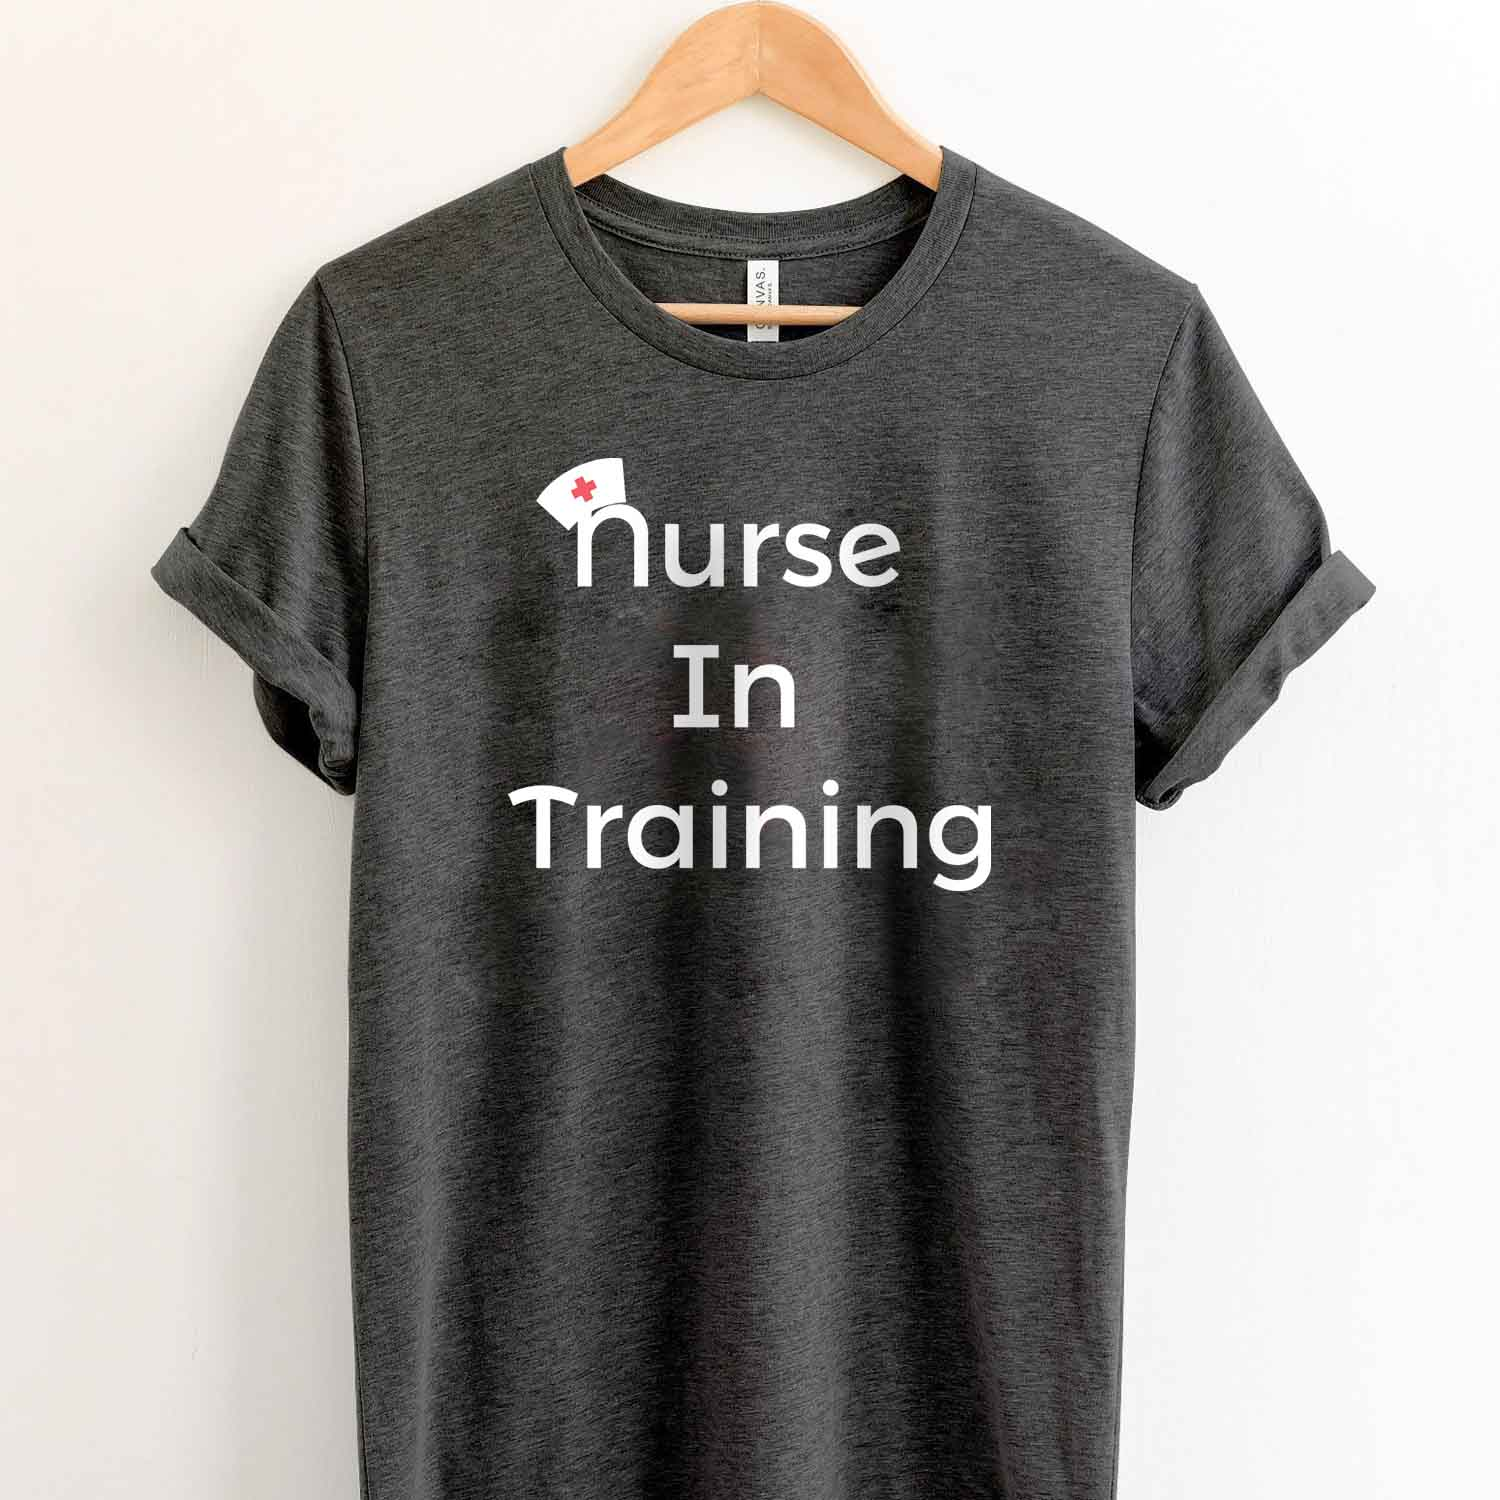 Nurse In Training Shirt Nursing Student T shirt